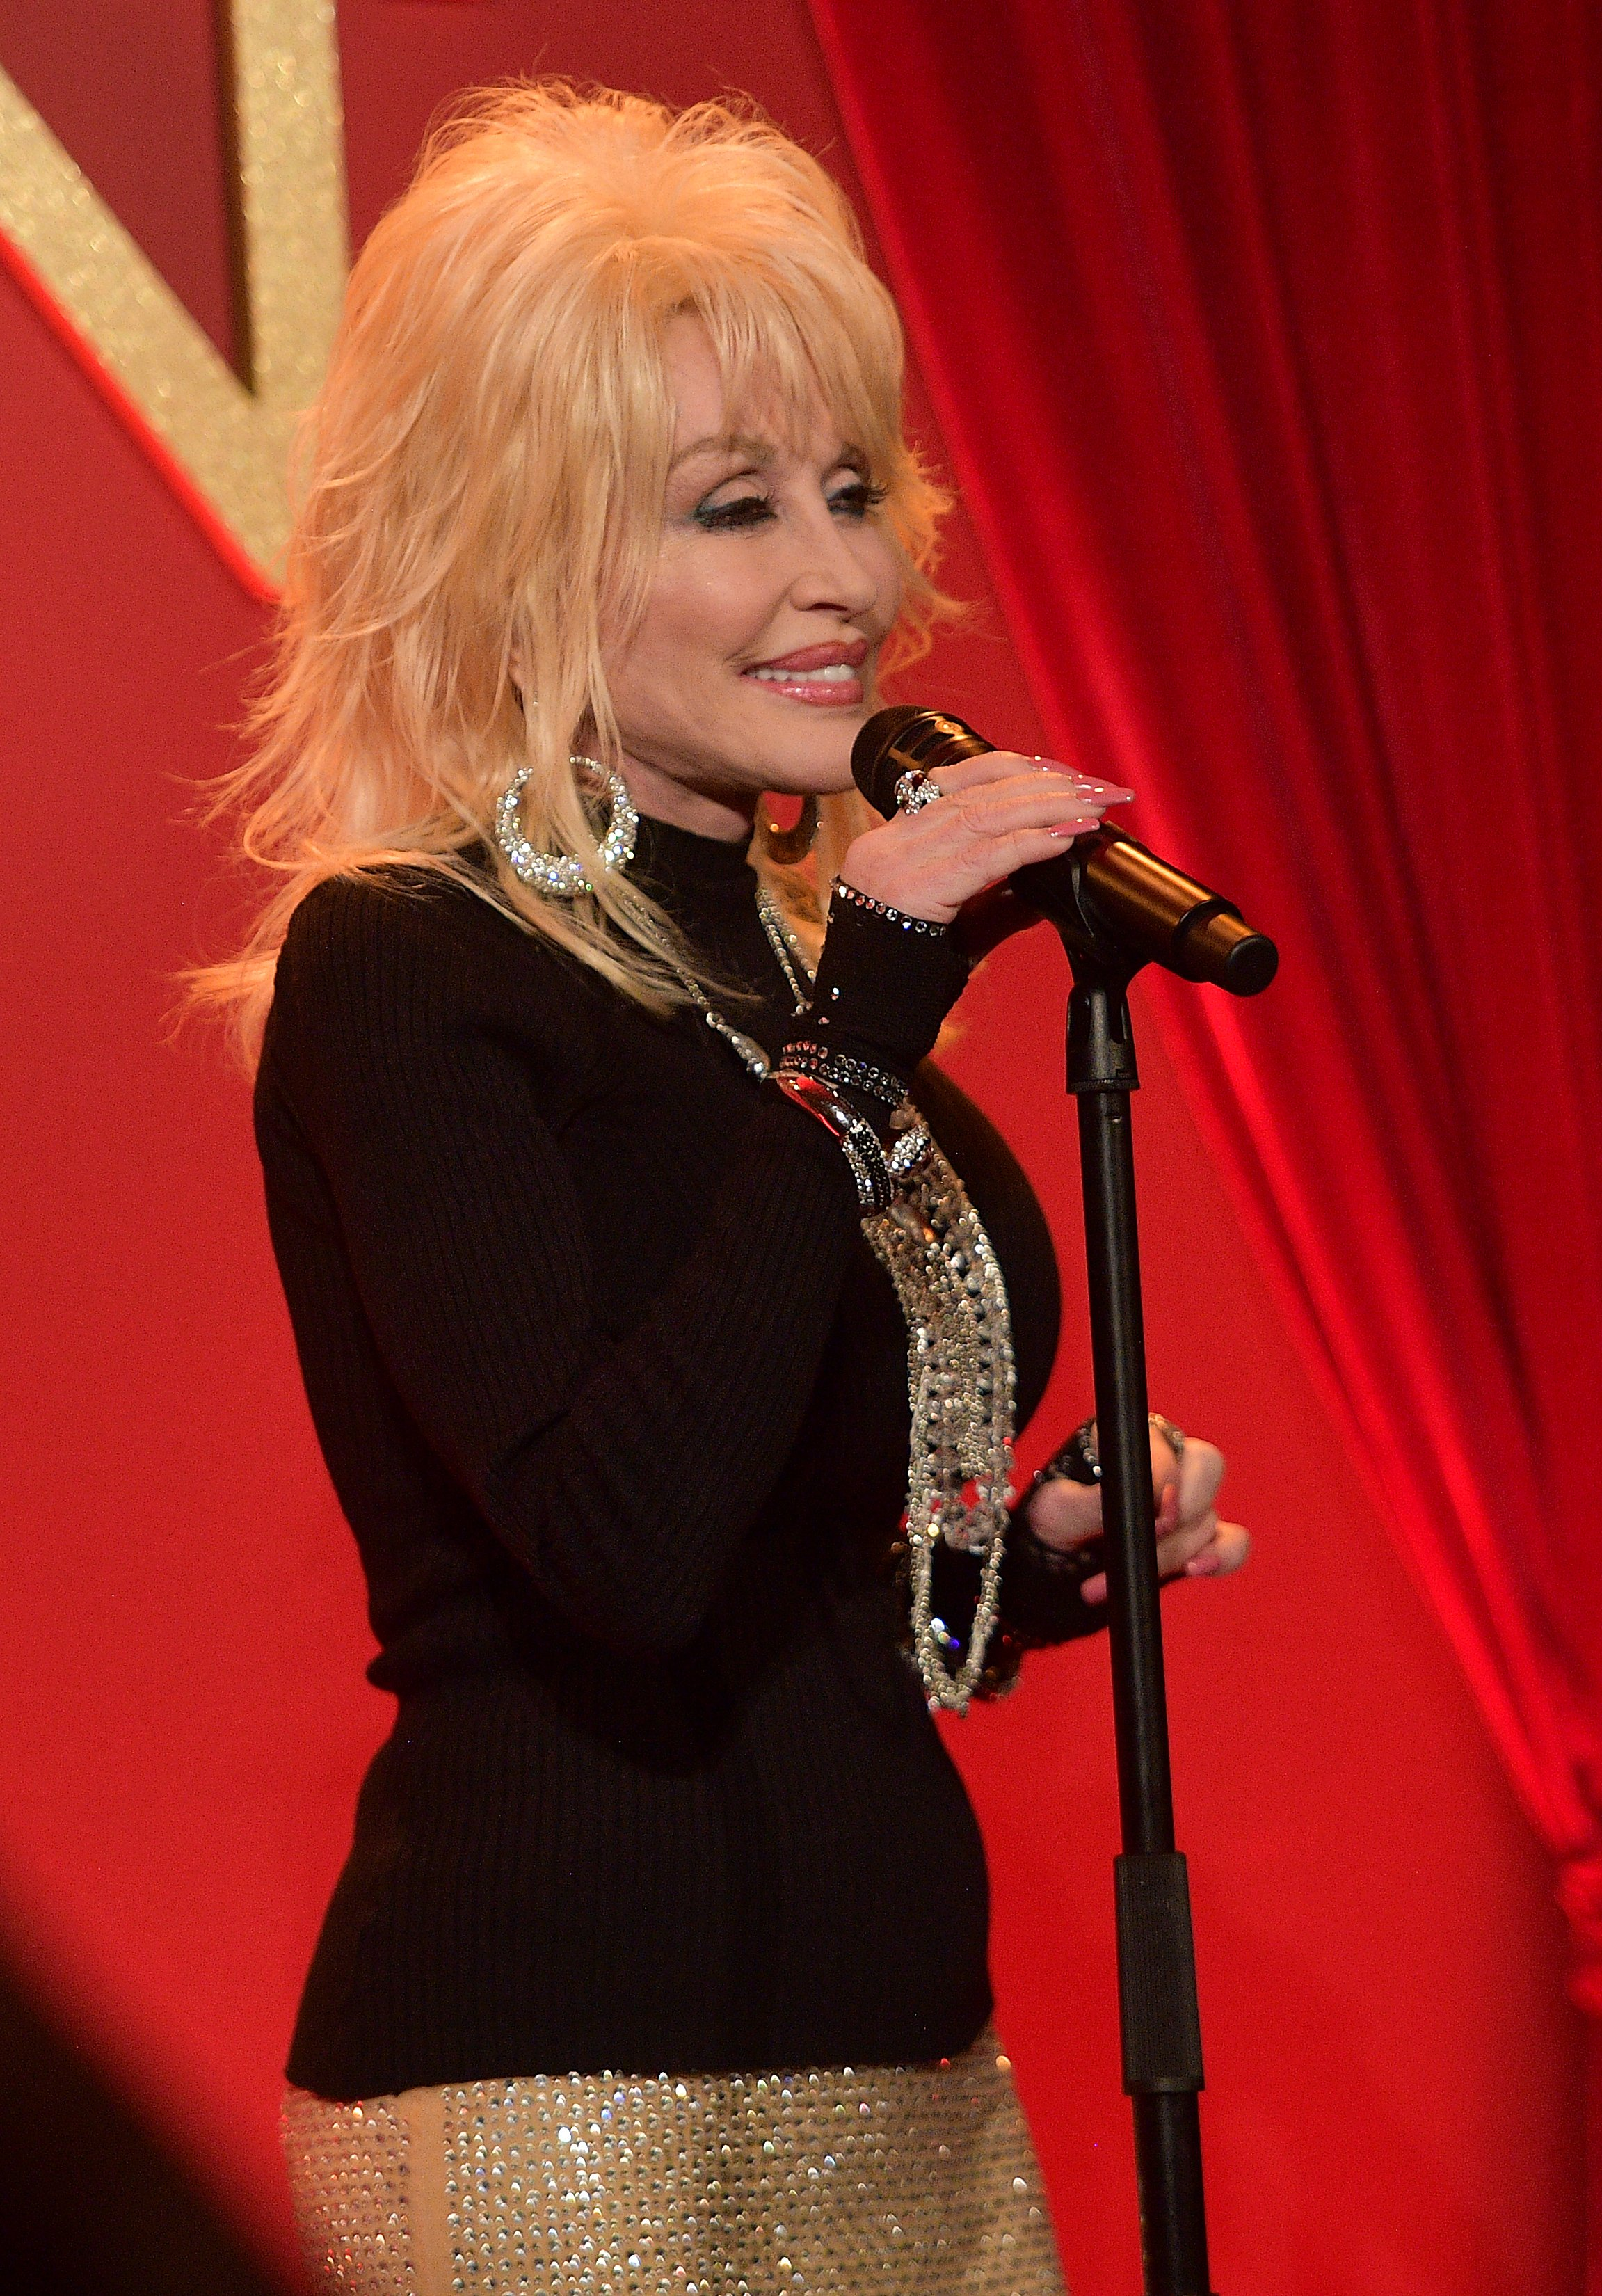 Image Credits: Getty Images / Matt Winkelmeyer | Dolly Parton performs onstage at a luncheon for the Netflix Film Dumplin' at Four Seasons Hotel Los Angeles at Beverly Hills on October 22, 2018 in Los Angeles, California.